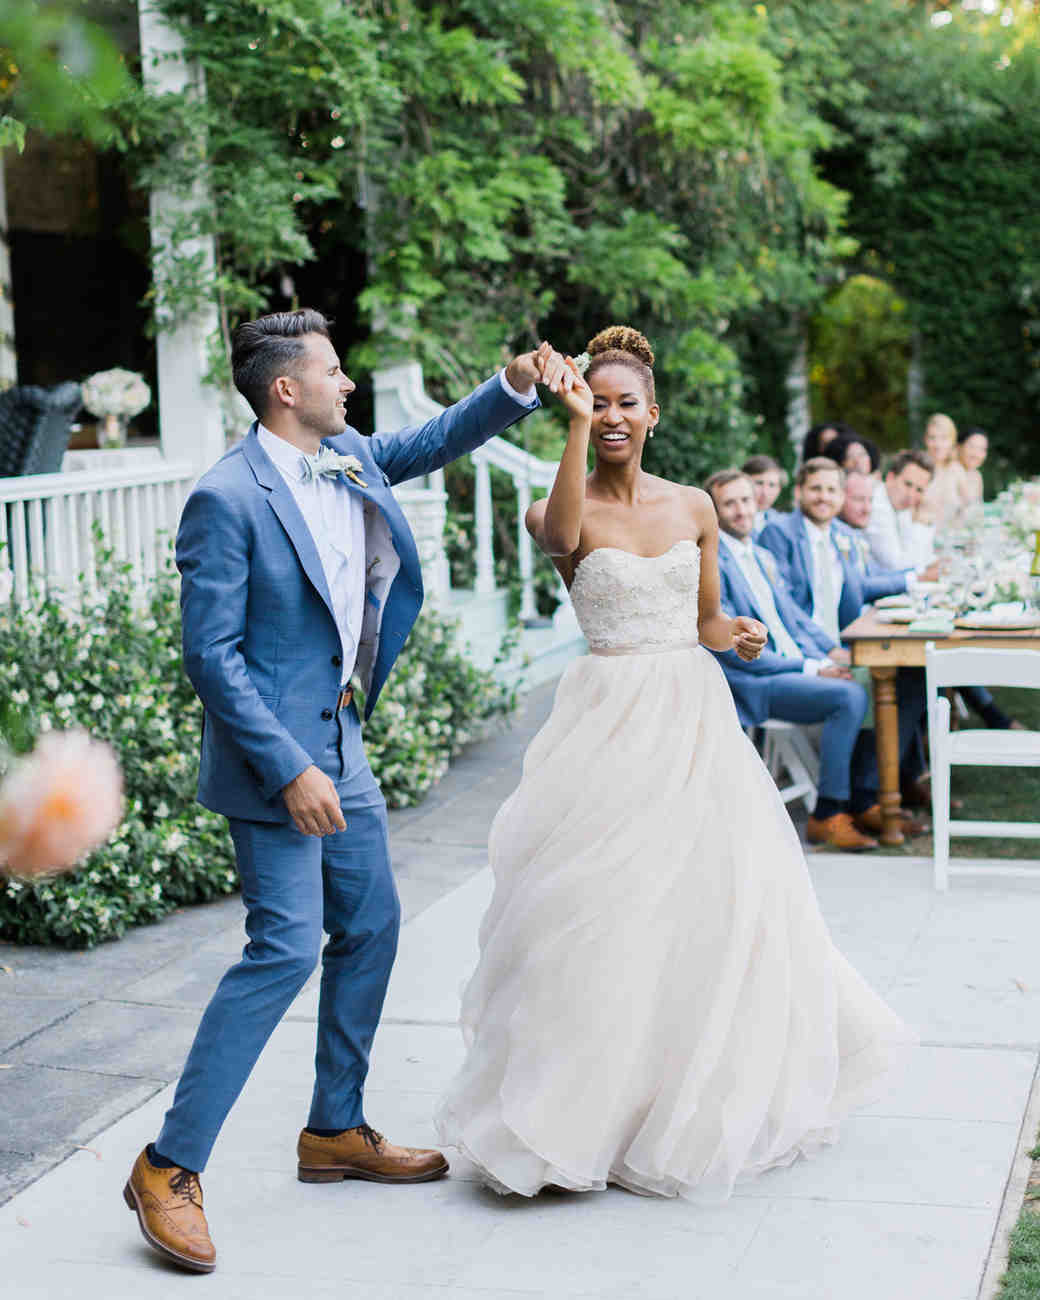 Navy Blue Wedding Dress Meaning - Ficts